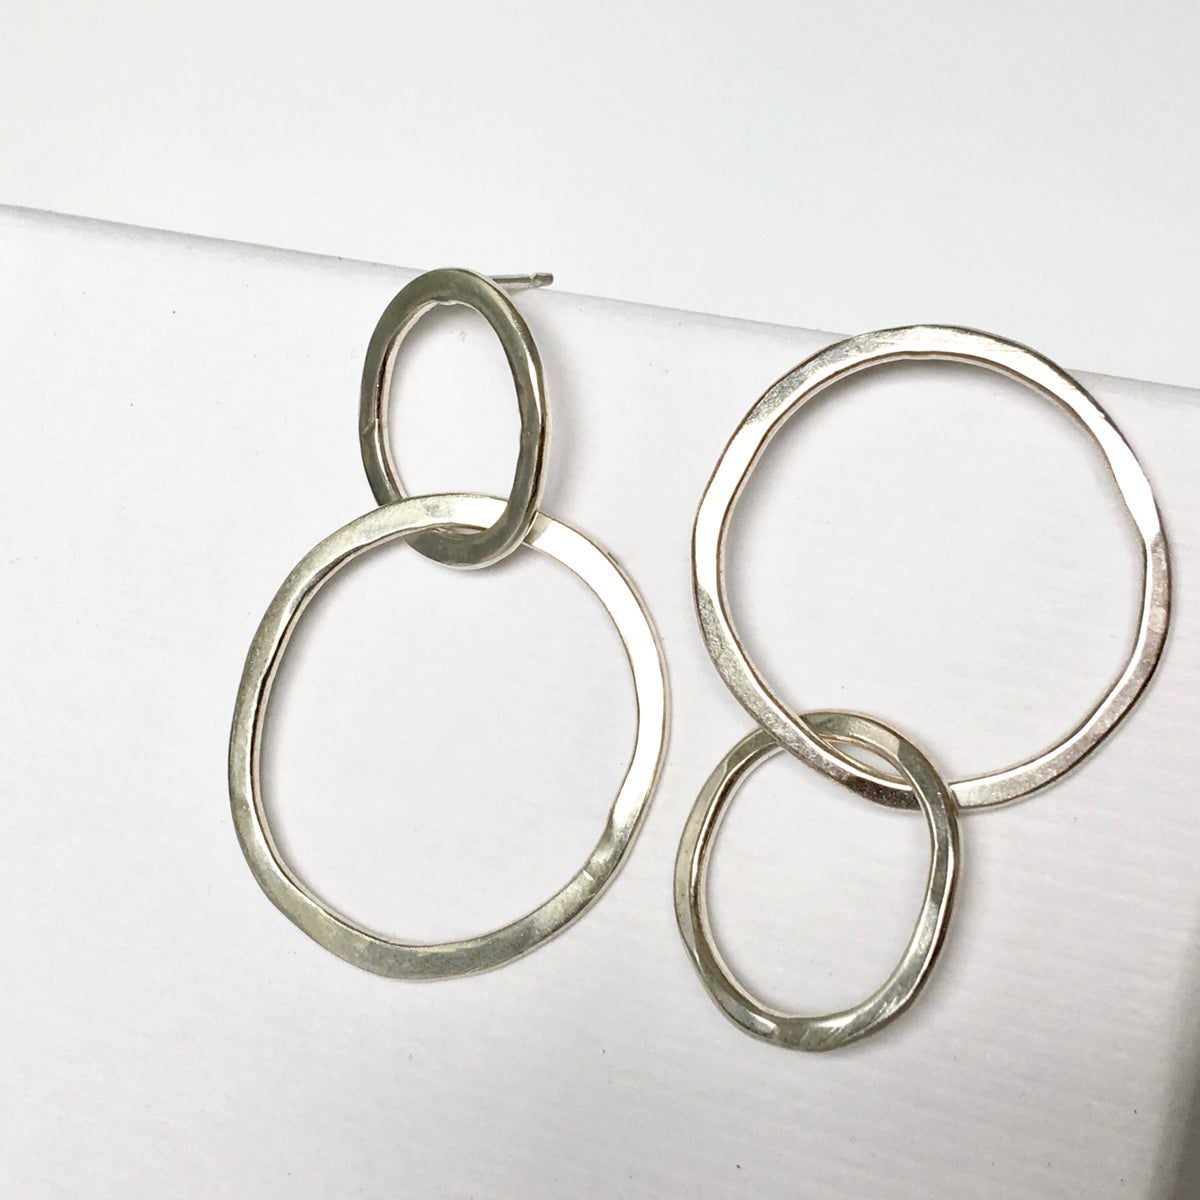 Image of Vice versa earrings